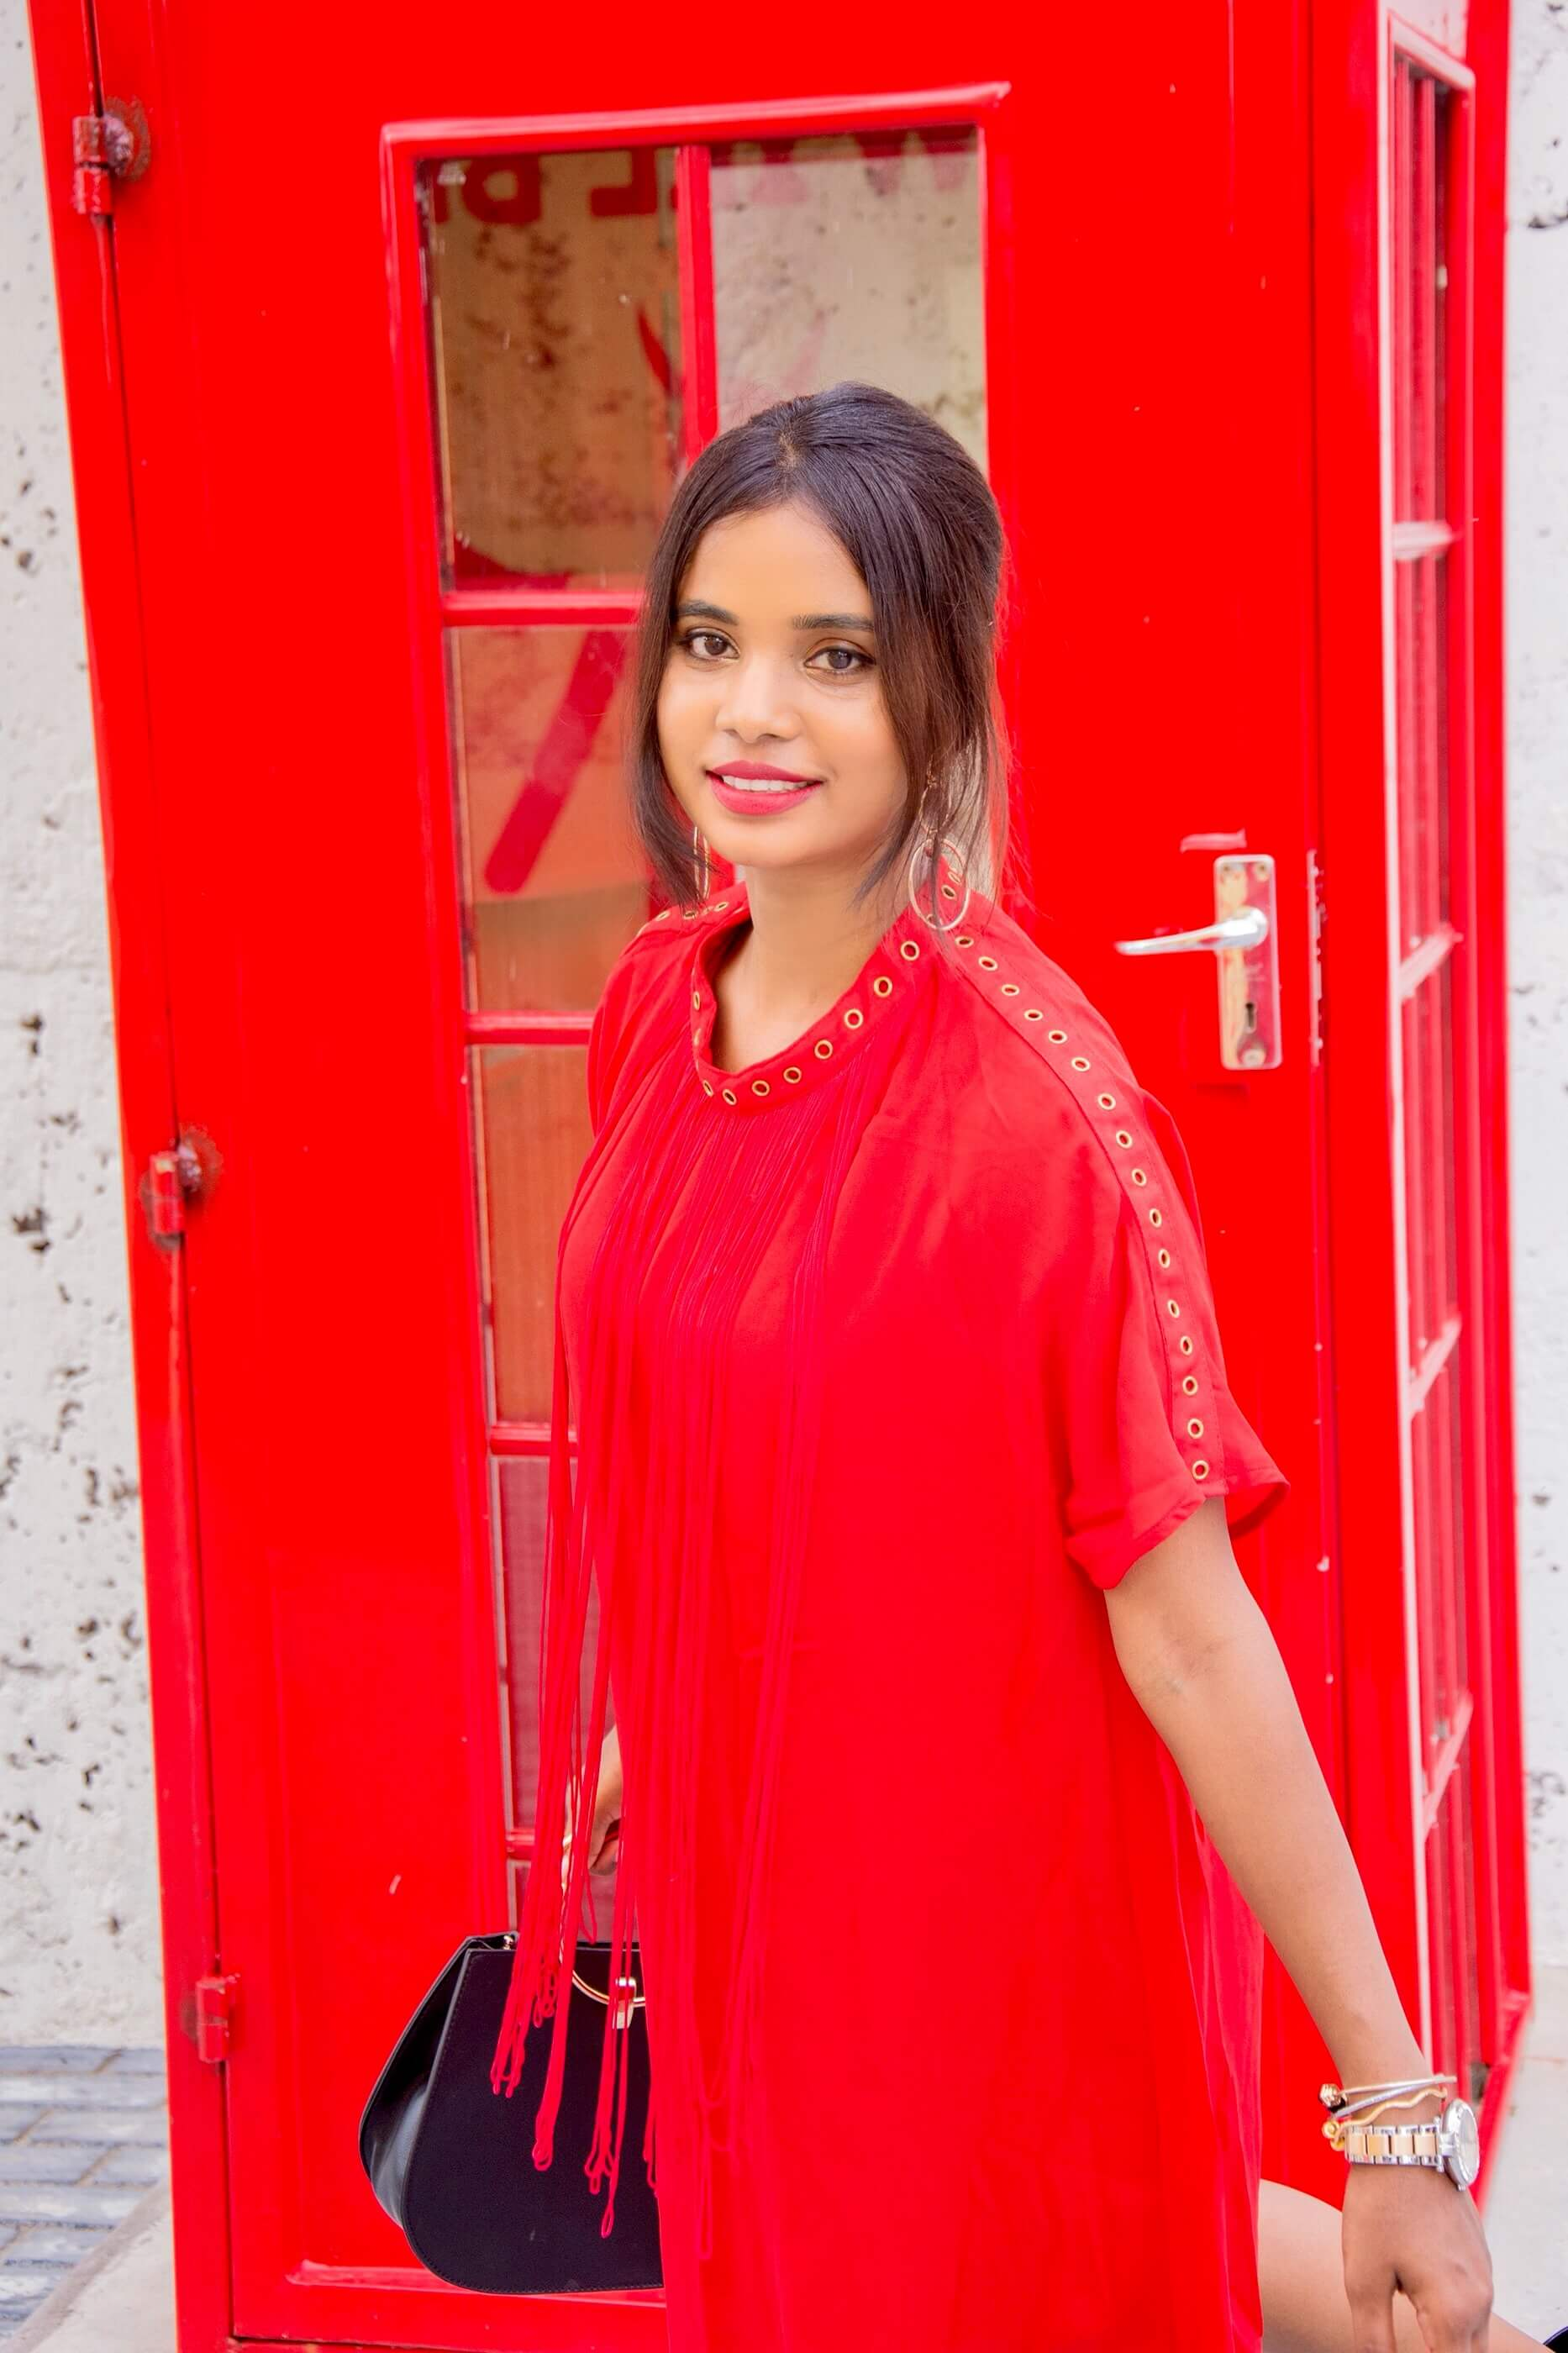 red fringed dress + life update